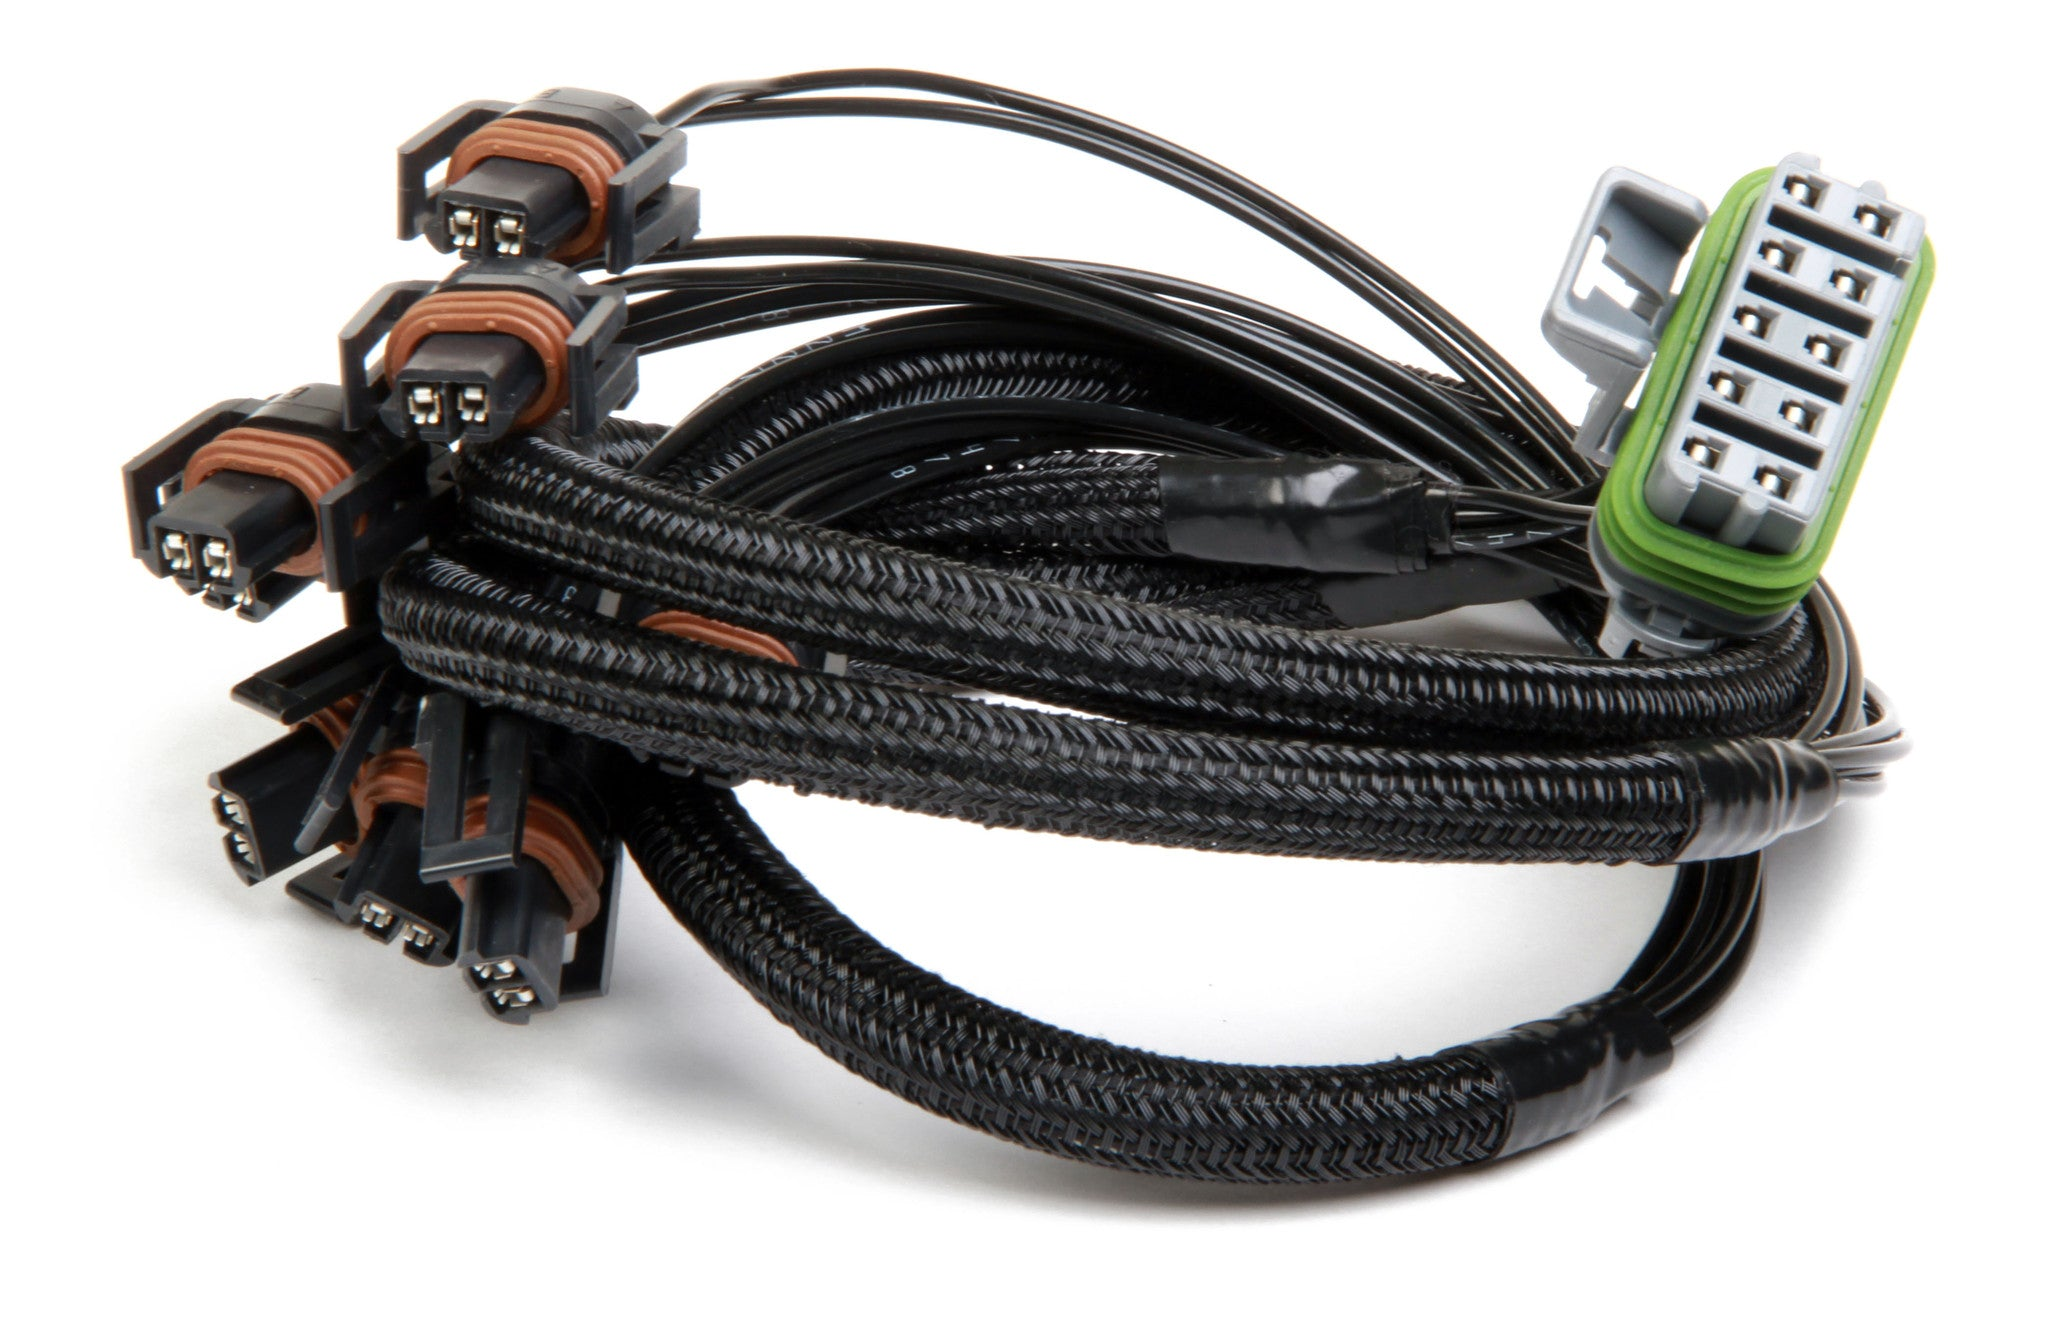 2 X 4 TBI INJ HARNESS